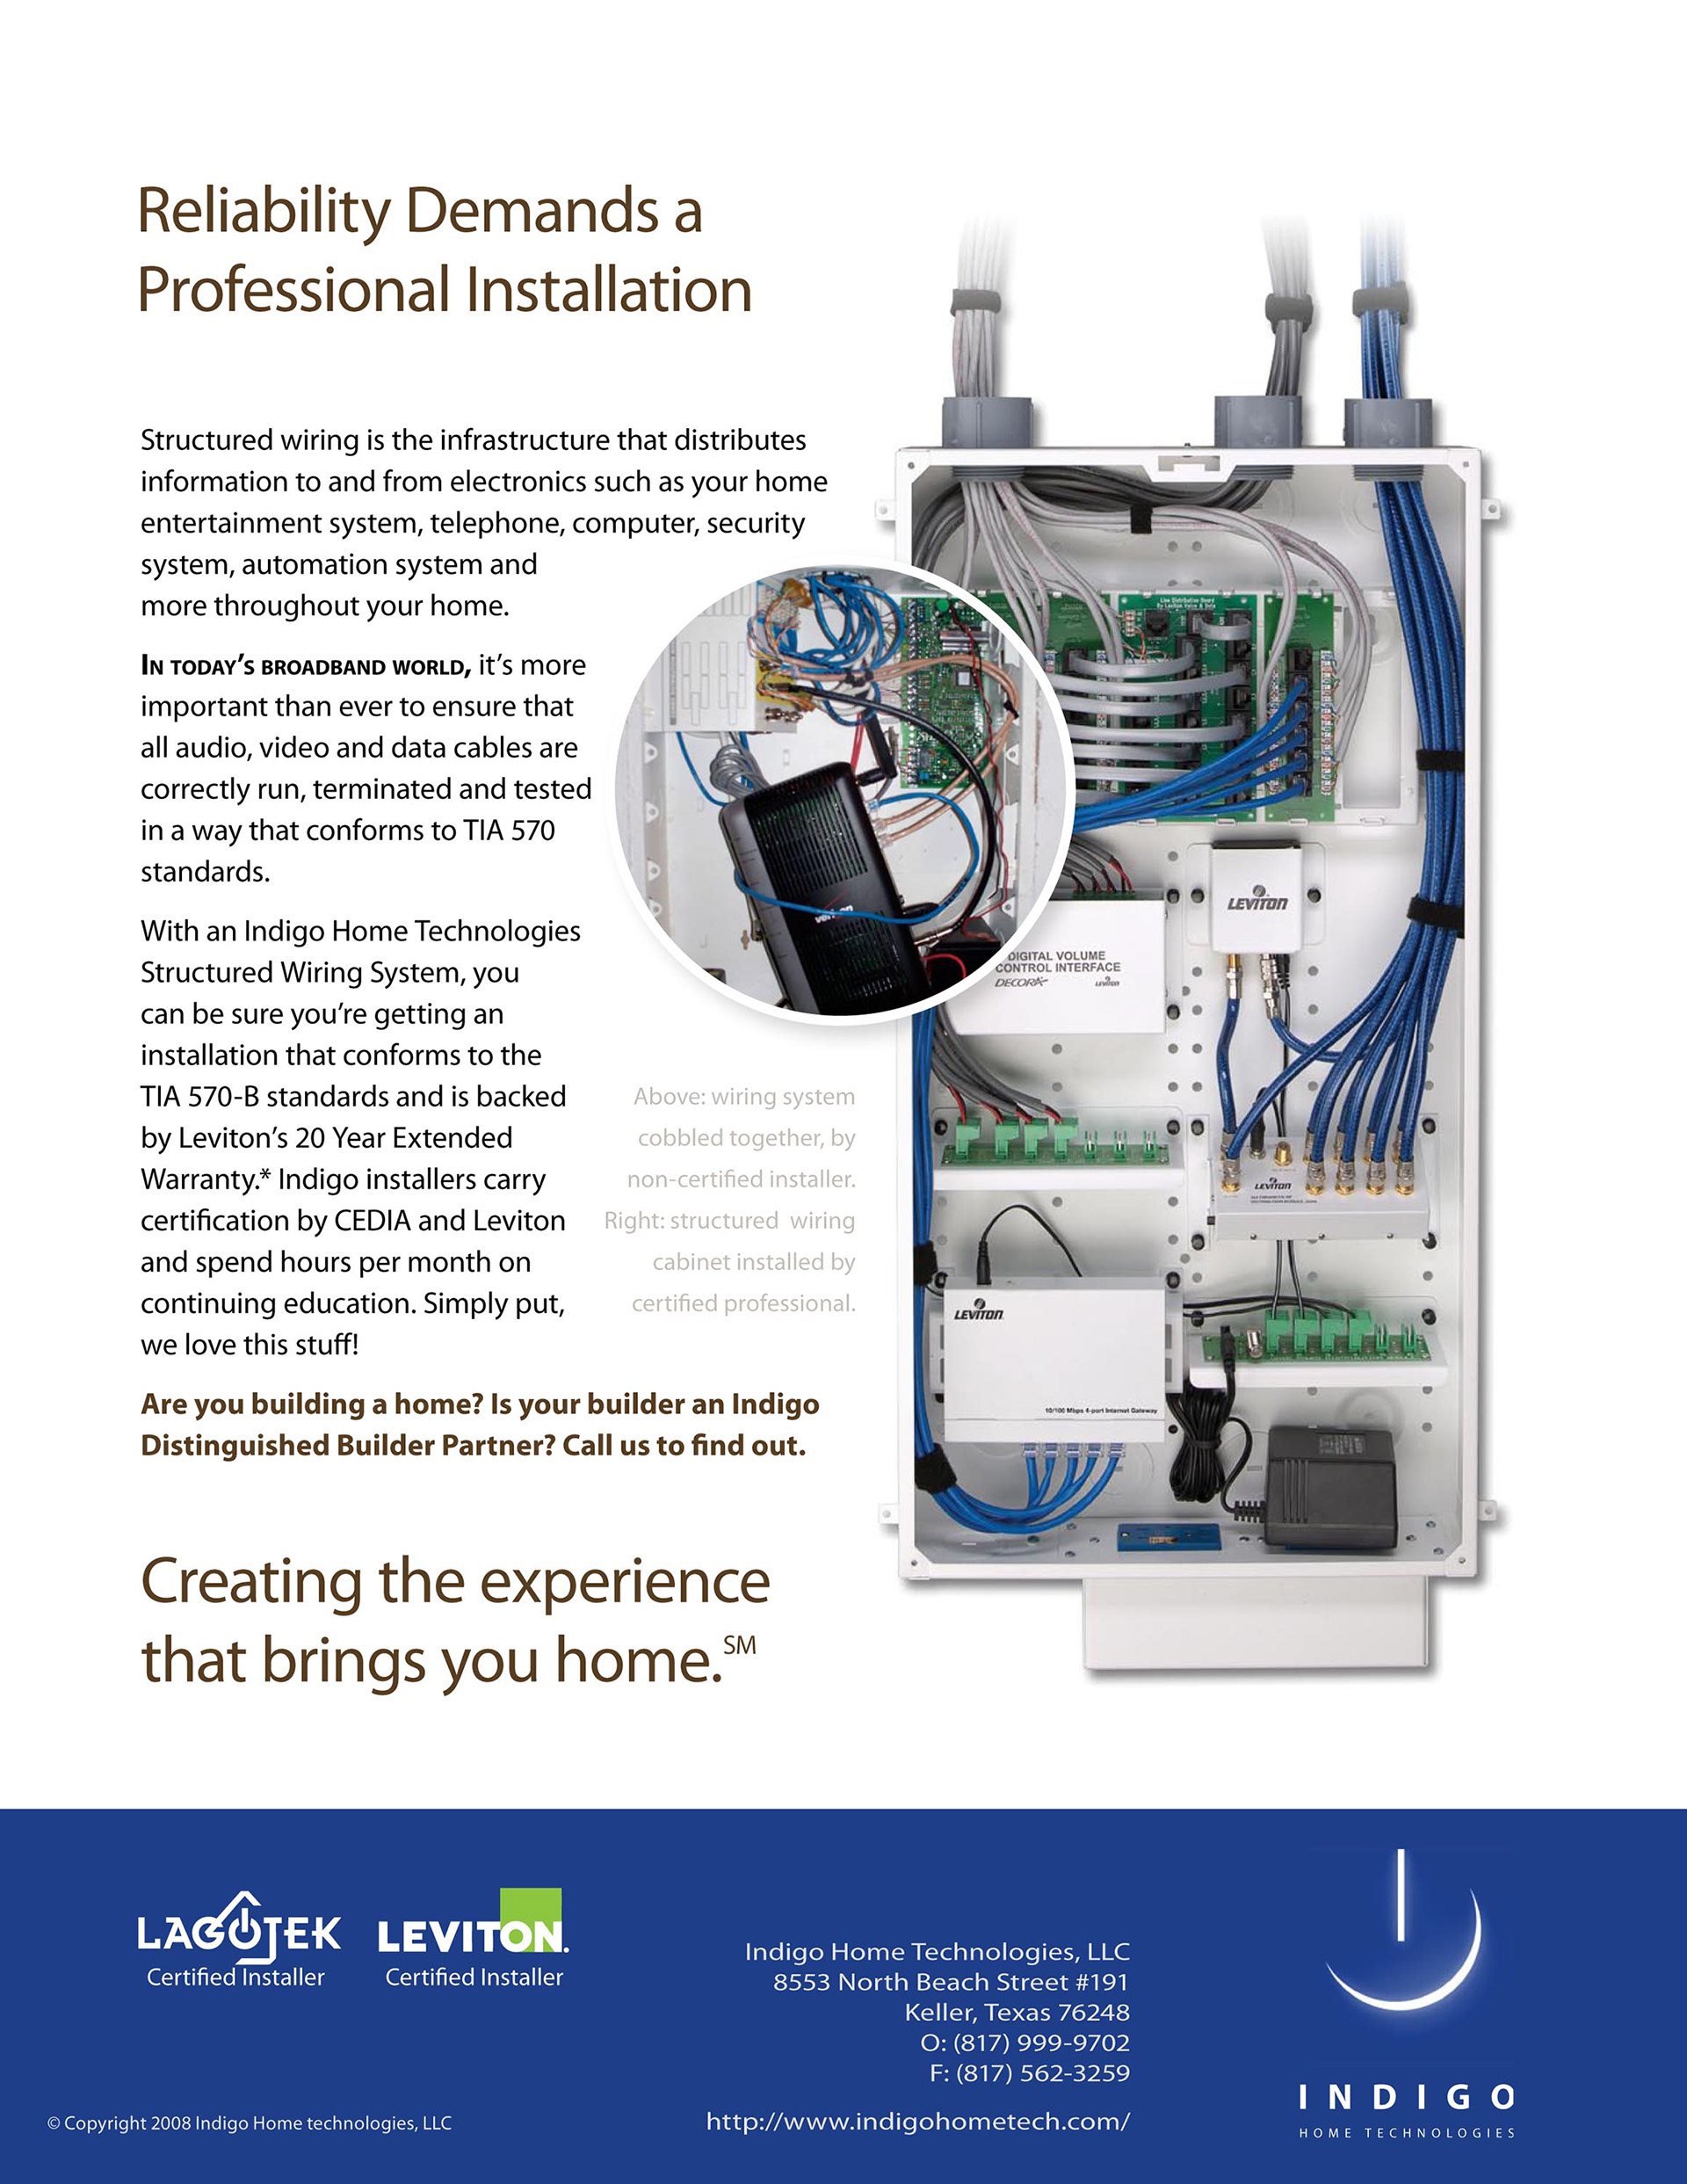 Home Automation Structured Wiring Systems Solutions William Alexy Indigo Looking For